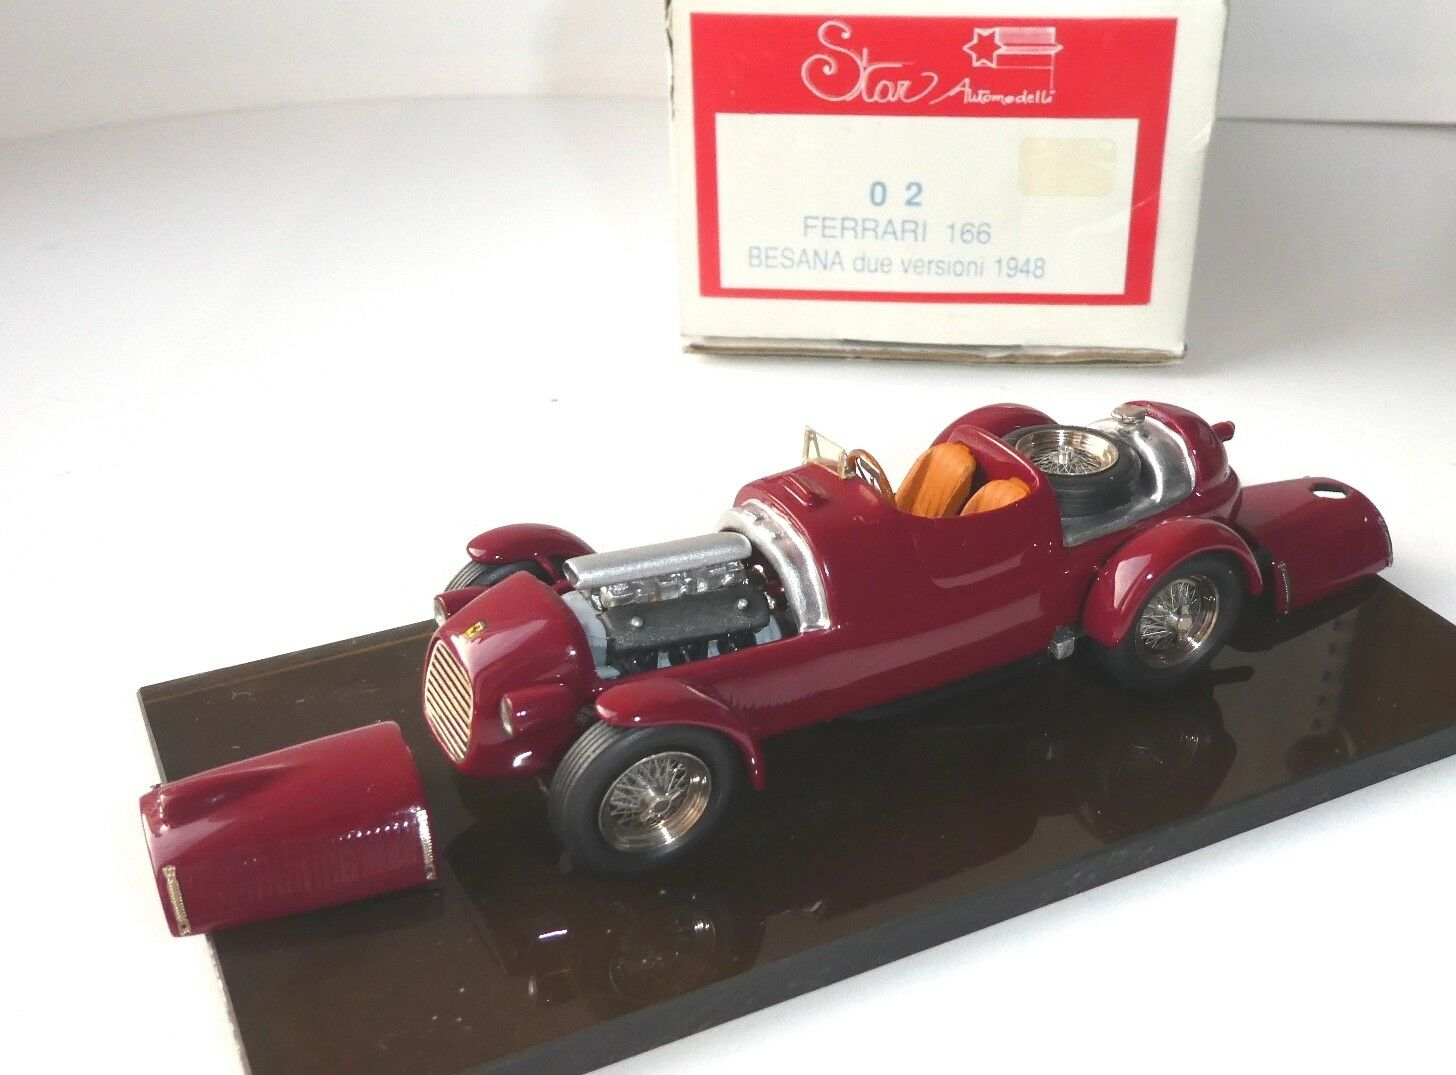 FERRARI 166 Besana 1948 OPEN ENGINE SUPER DETAILED, TRON star 2, 1:43 n bbr amr